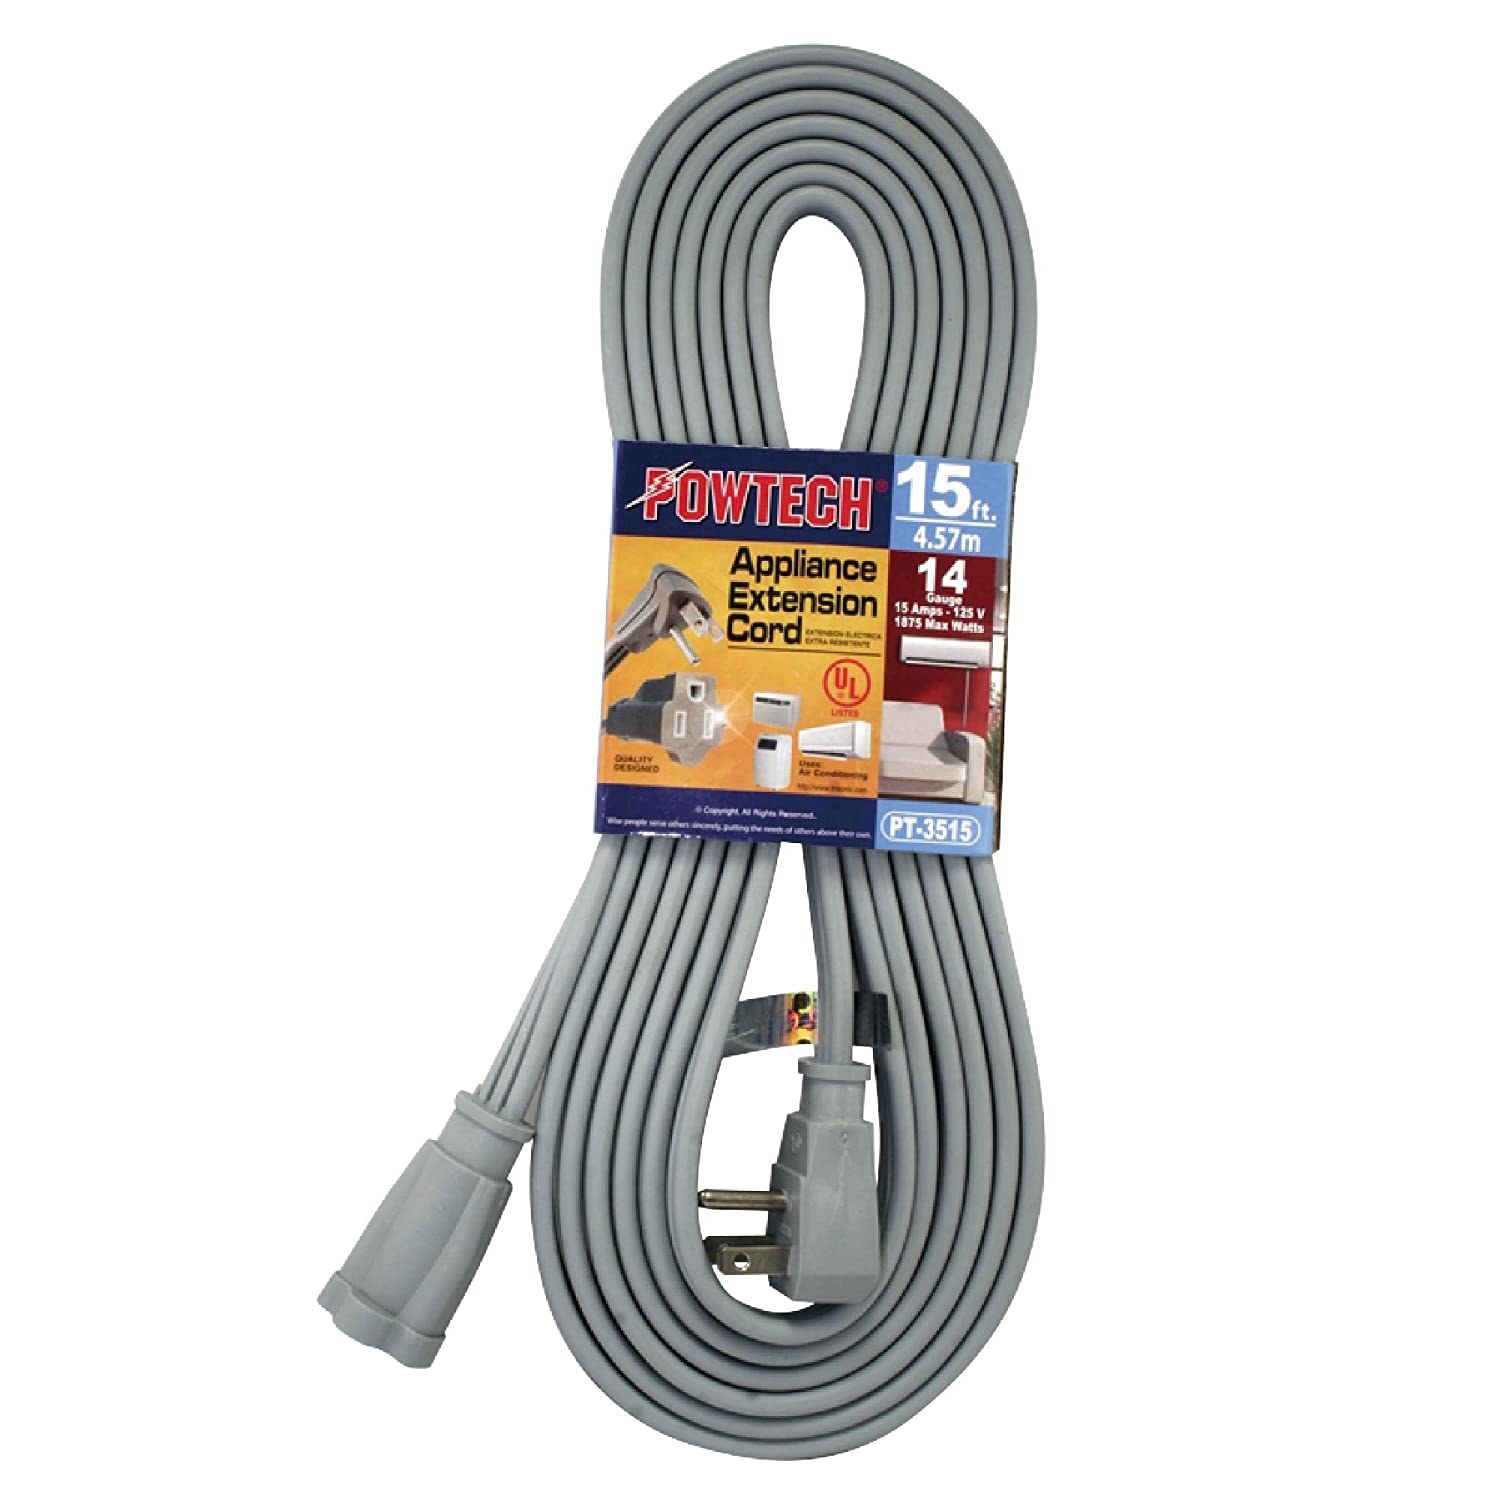 POWTECH Heavy duty 15 FT Air Conditioner and Major Appliance Extension Cord UL Listed 14 Gauge, 125V, 15 Amps, 1875 Watts GROUNDED 3-PRONGED CORD